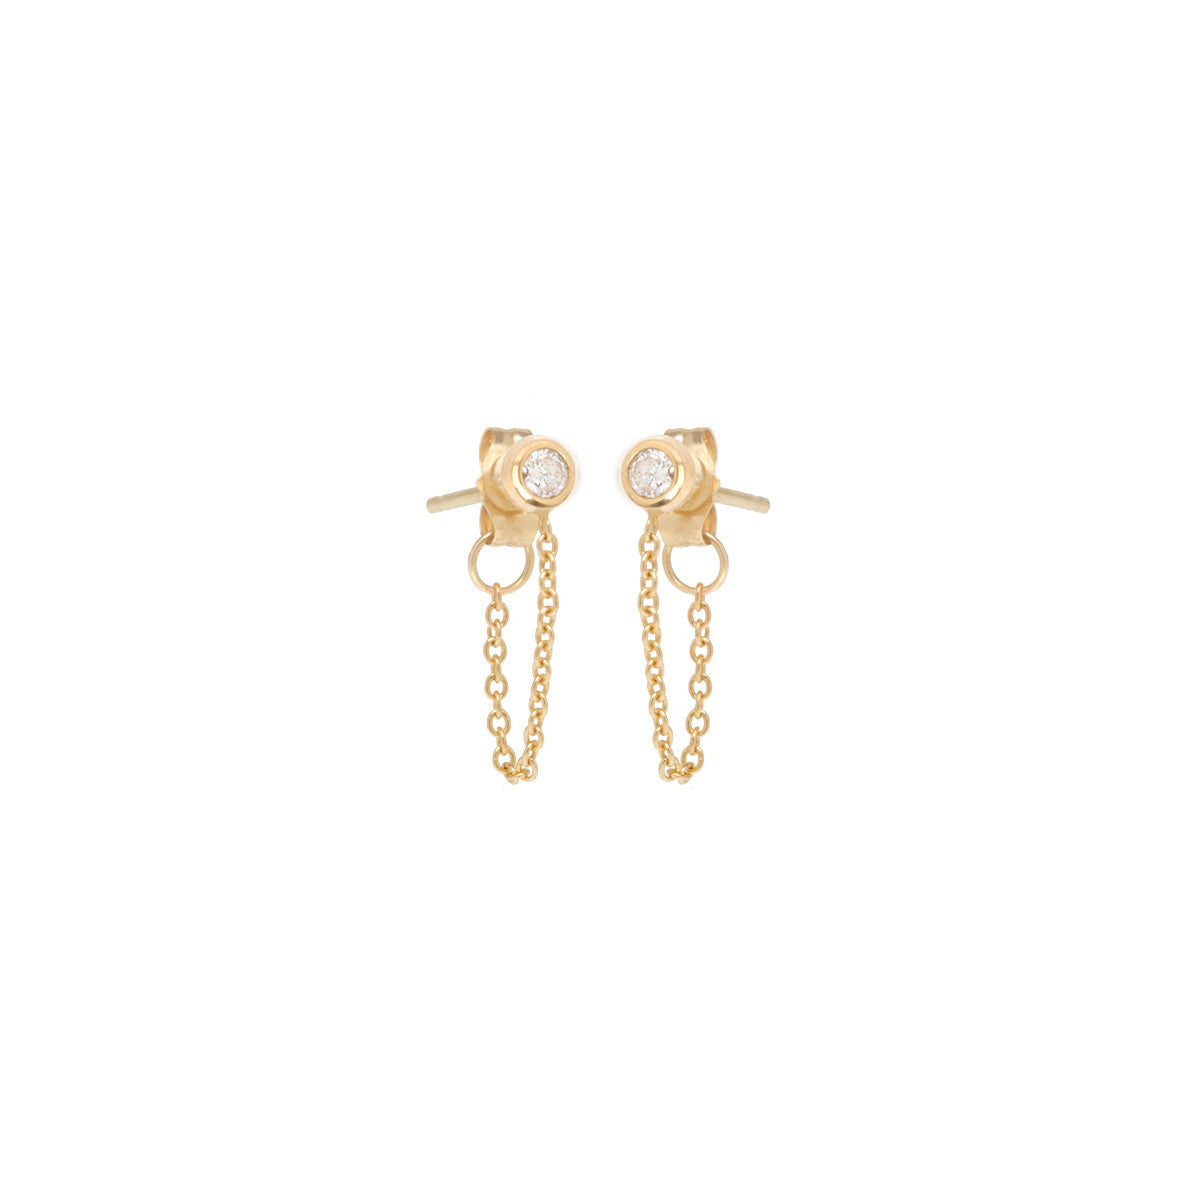 Zoë Chicco 14kt Yellow Gold White Diamond Bezel Chain Stud Earrings